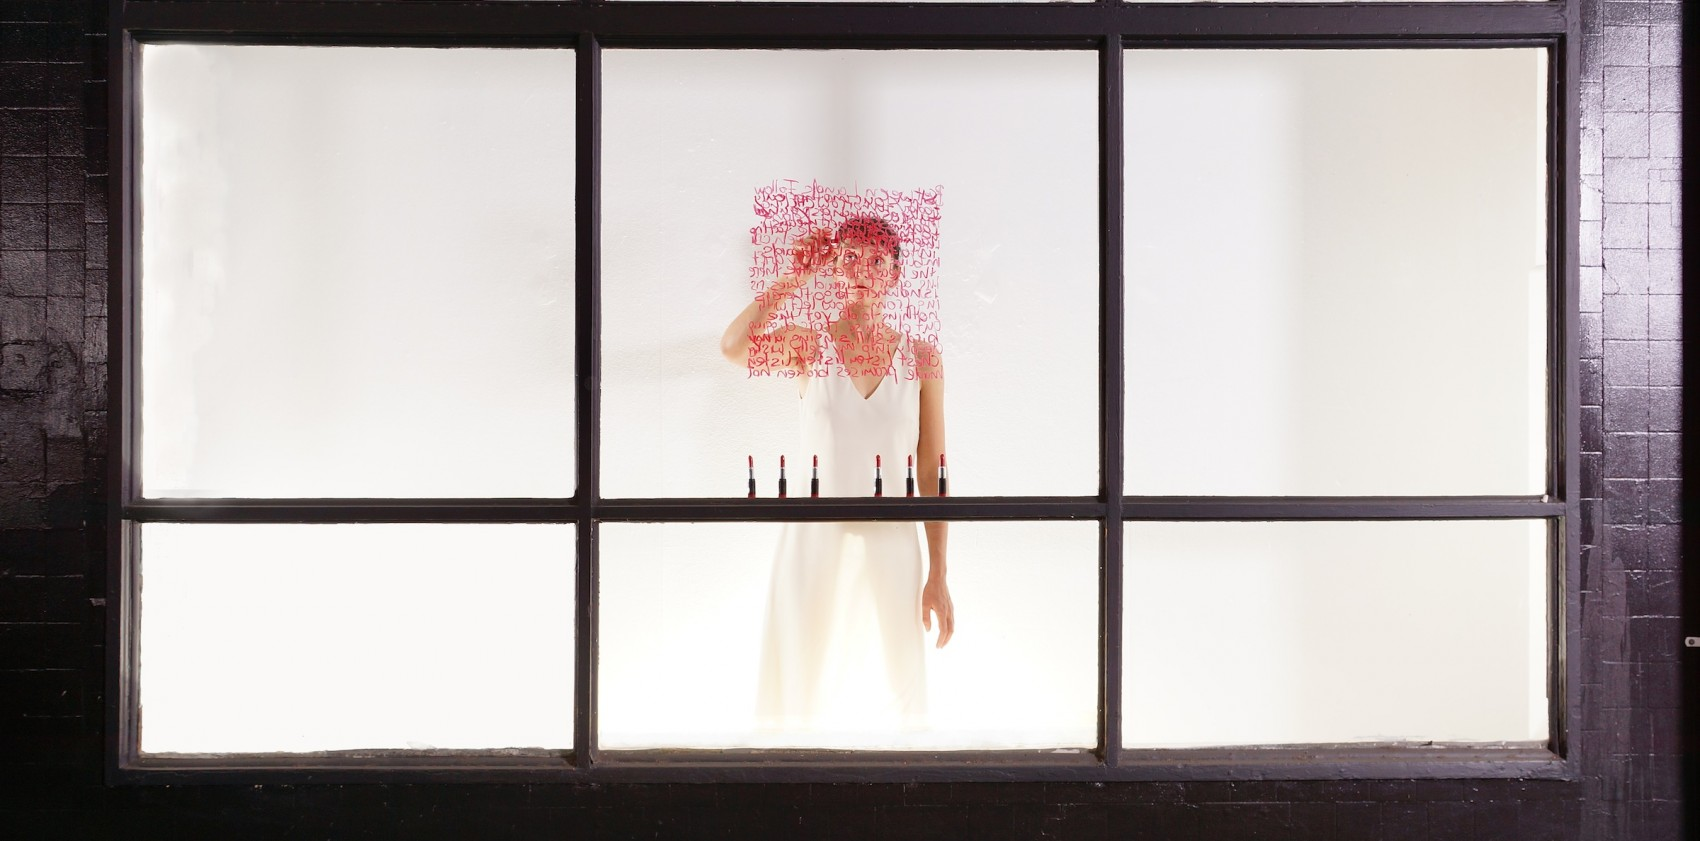 Looking through white windows with black frames to a woman wearing white who is writing in red on the glass